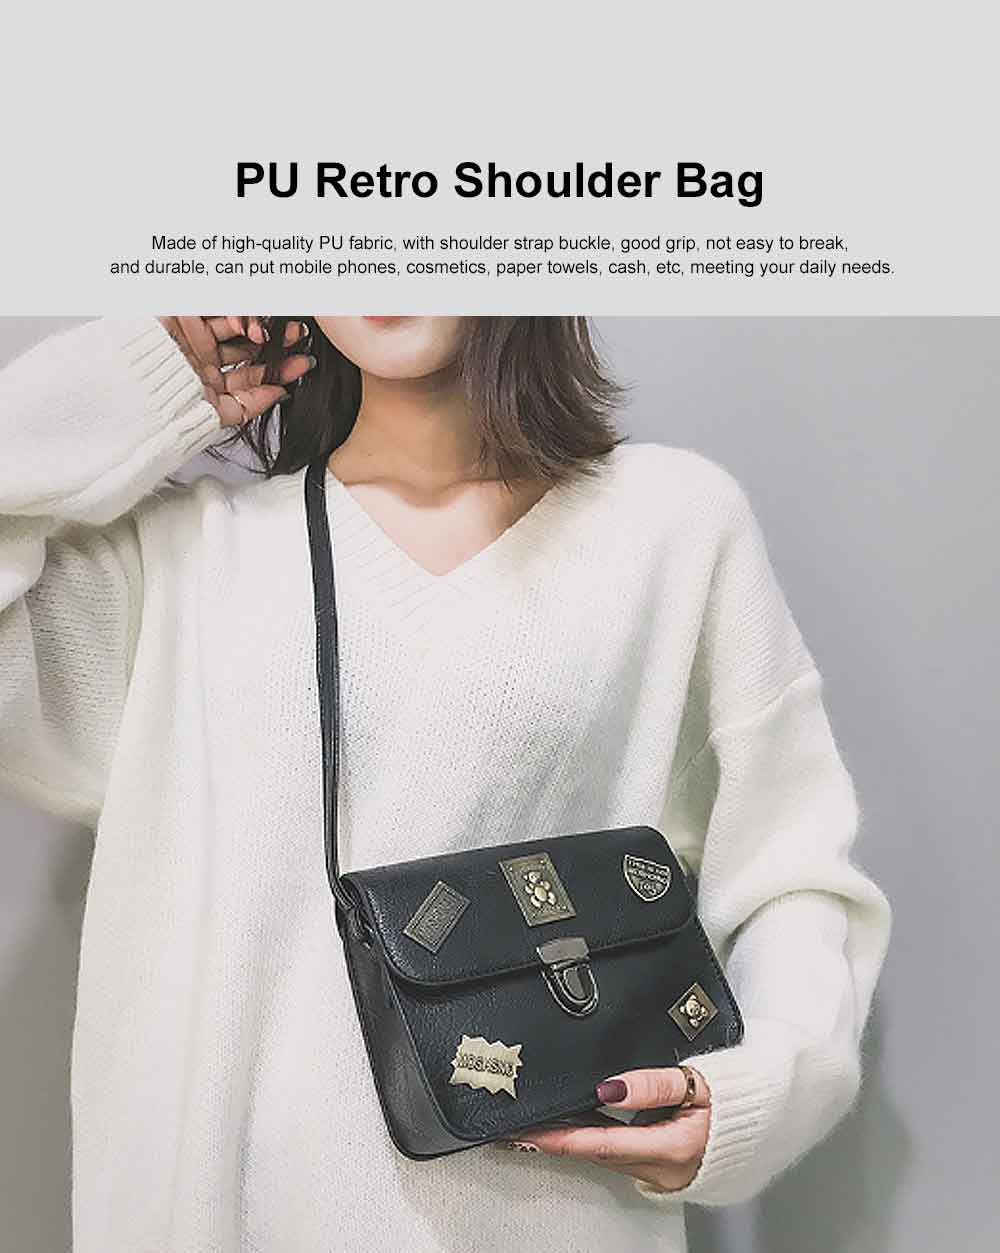 PU Retro Shoulder Bag, Ladies diagonal Bag, with Good Quality Lining, Shopping, Work, Dating Essential 0